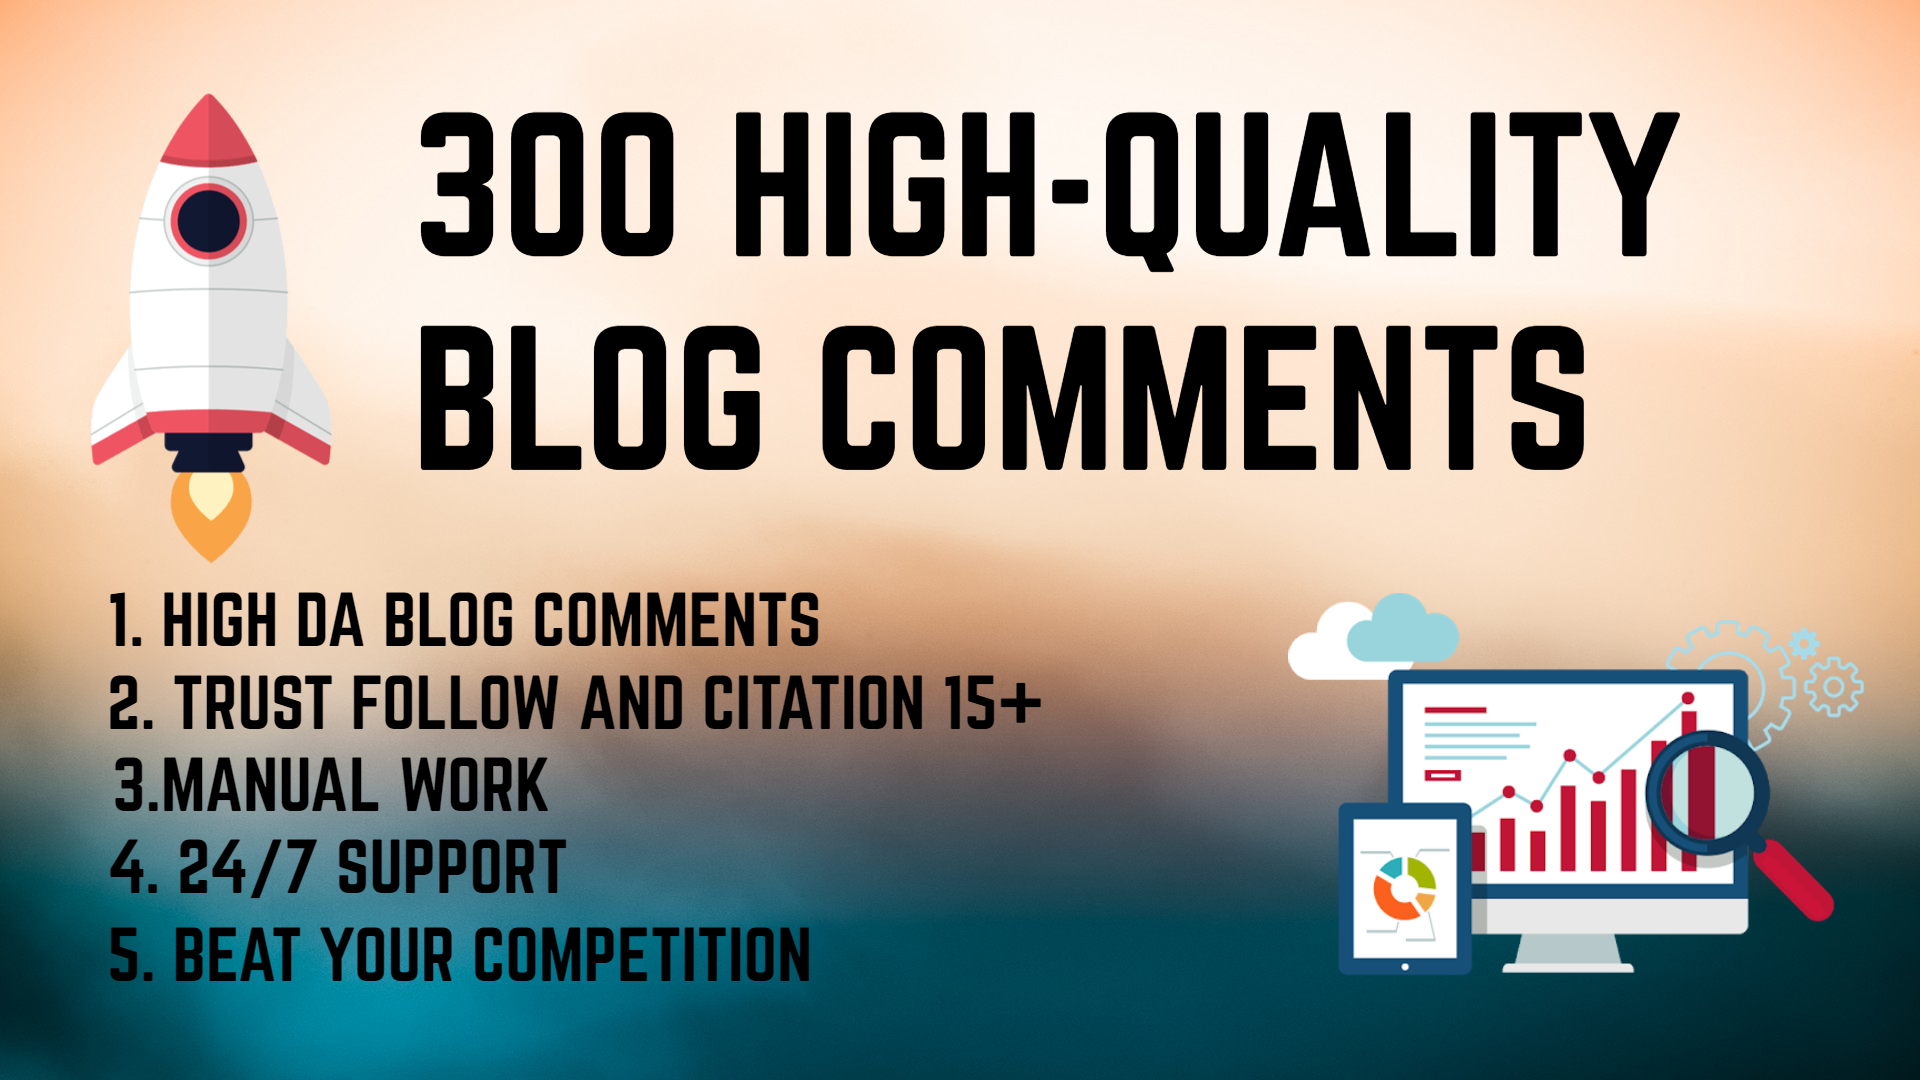 I will do 300 high quality blog comments